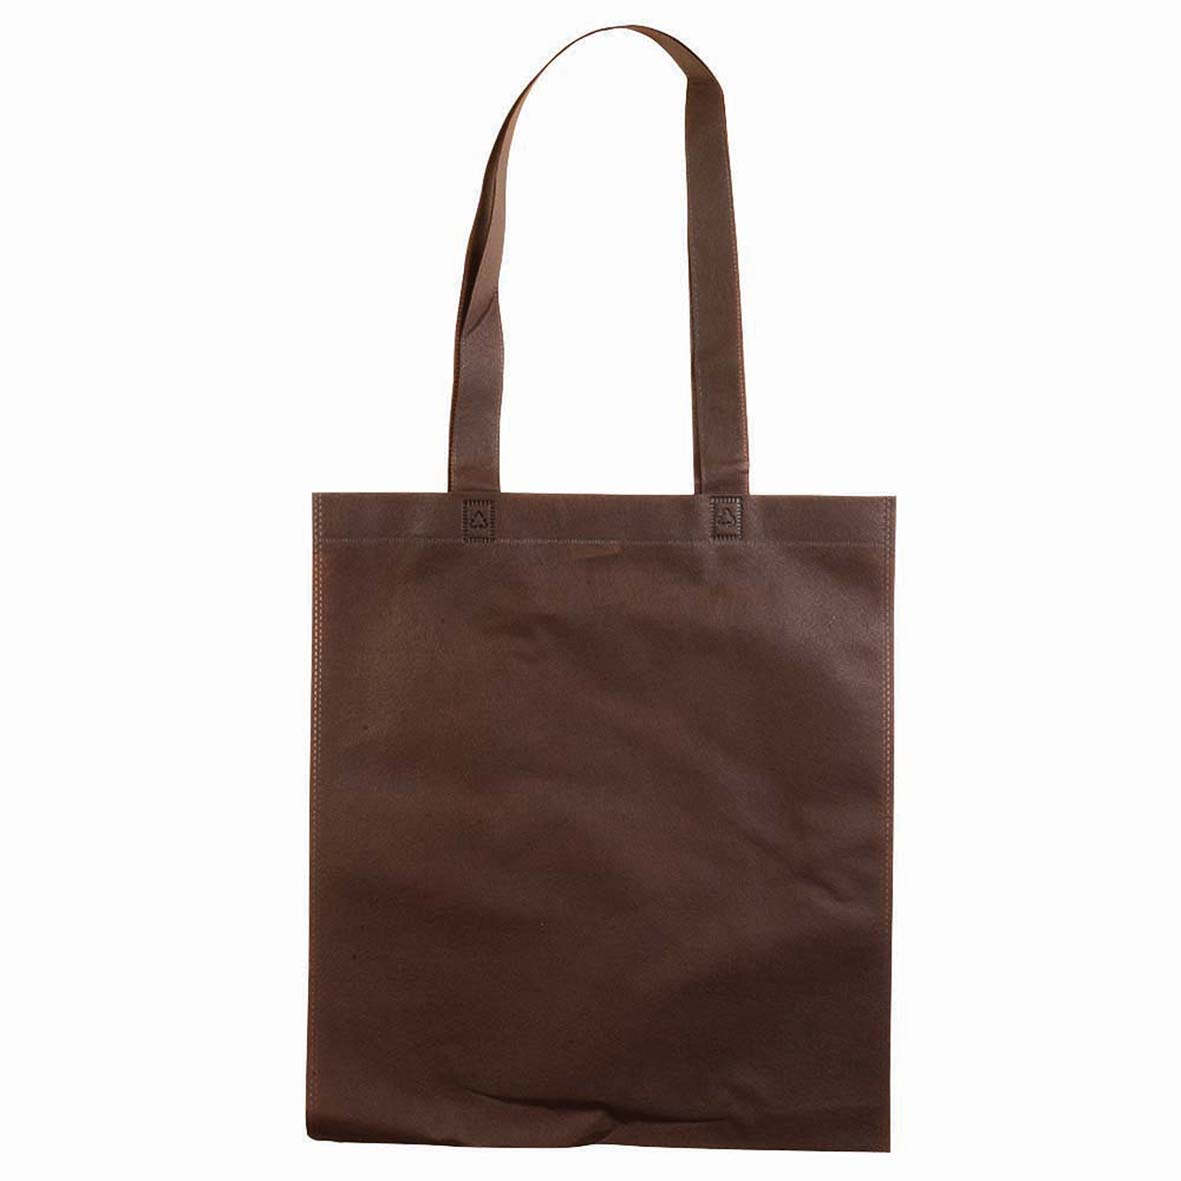 TNT all purpose bag - Brown gb-246 br